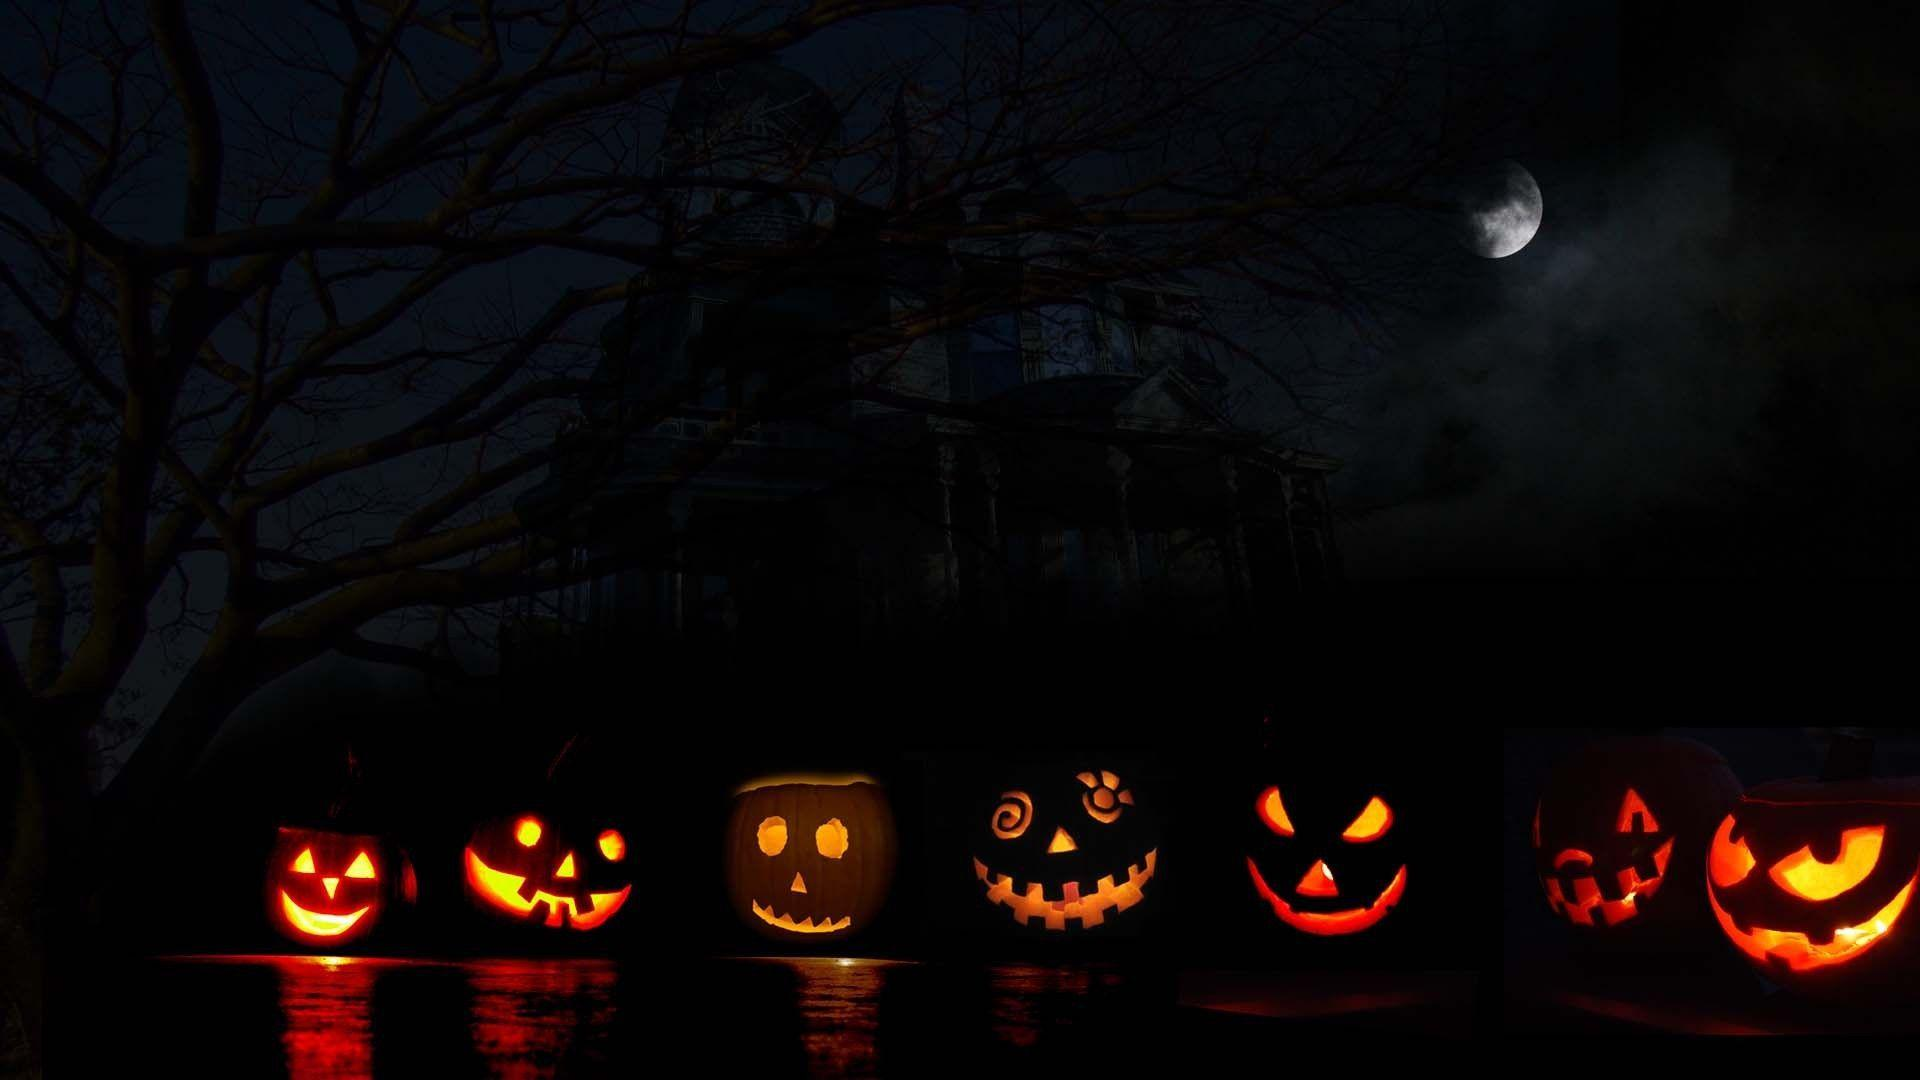 Halloween Pumpkin Backgrounds - Wallpaper Cave